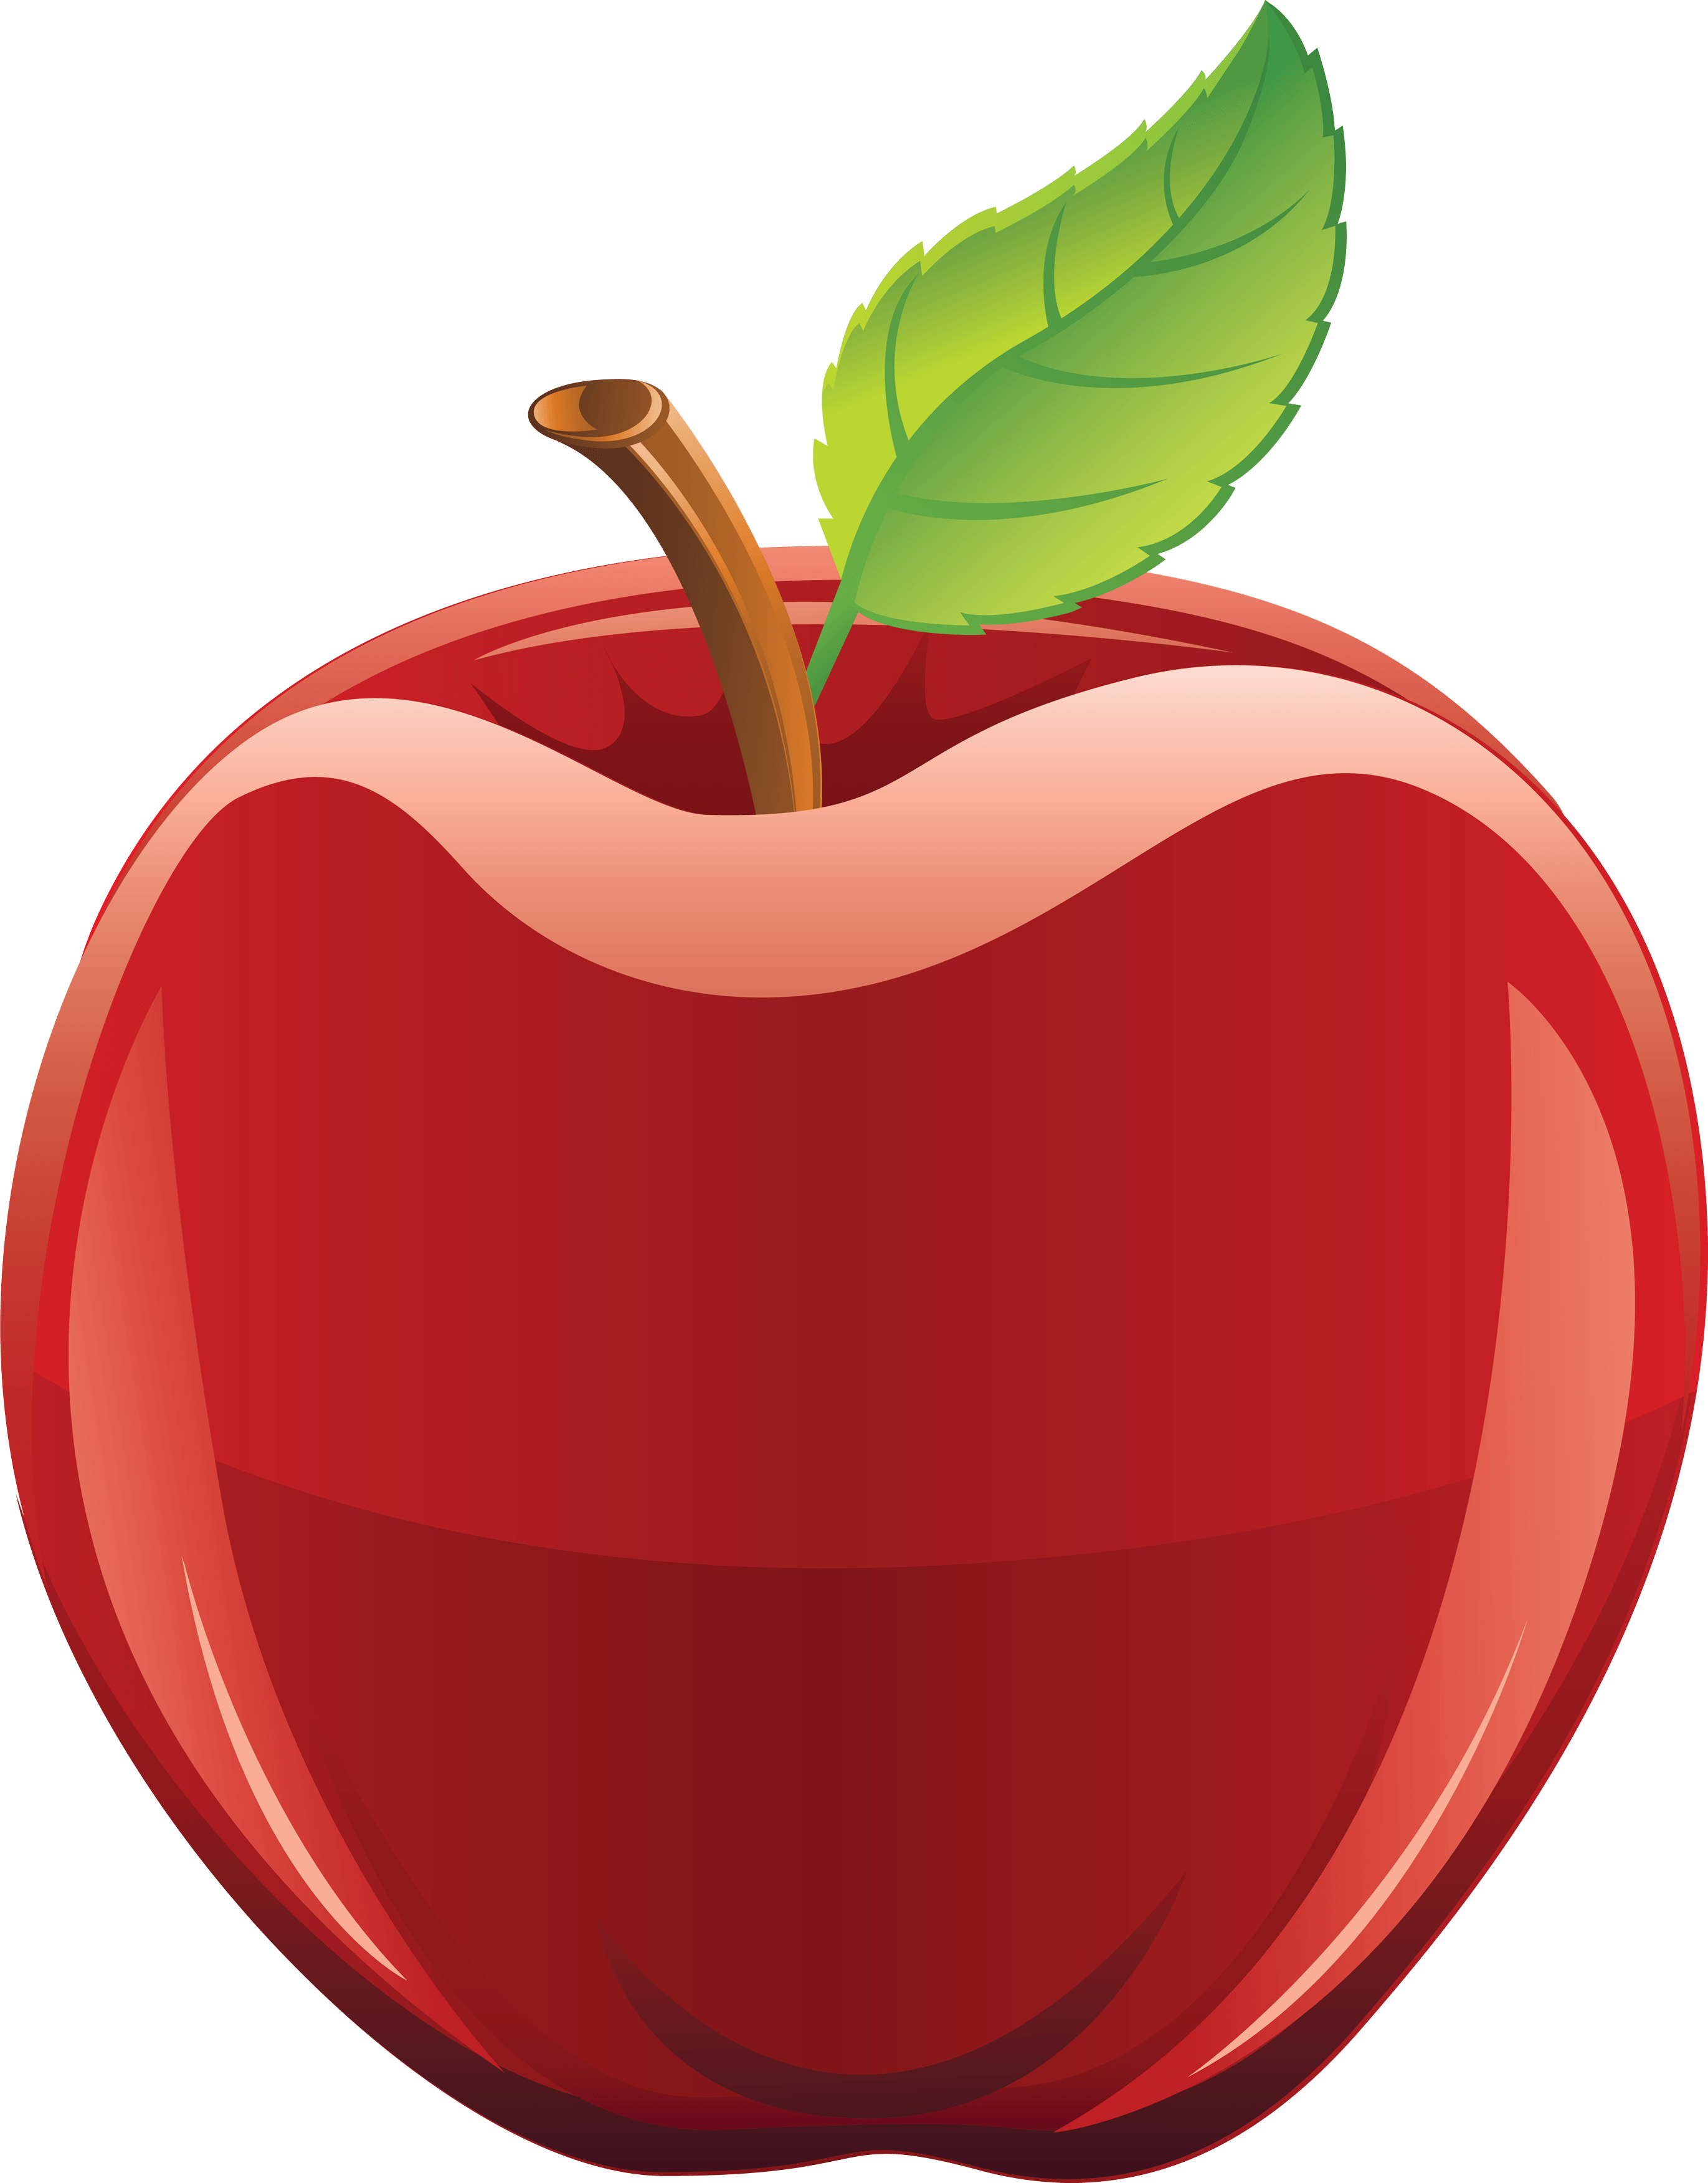 Apple png. Red image